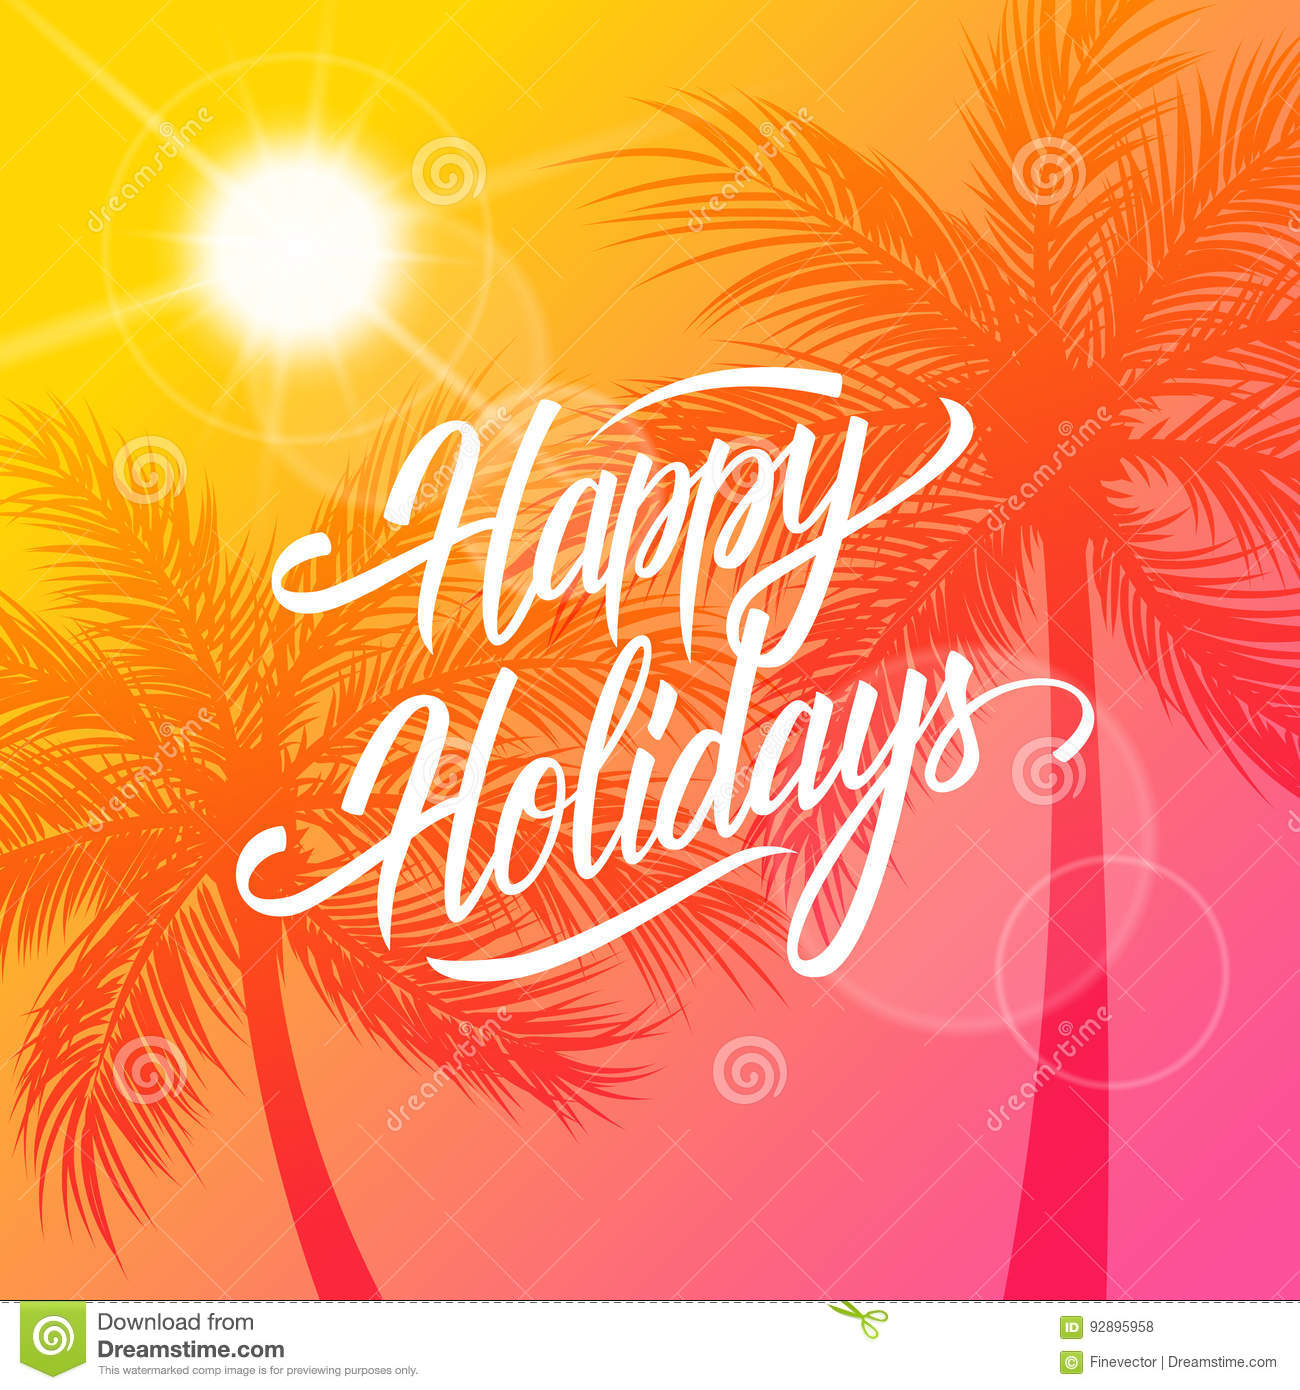 Happy holidays greeting card summertime background with happy holidays greeting card summertime background with calligraphic lettering text design and palm trees silhouette m4hsunfo